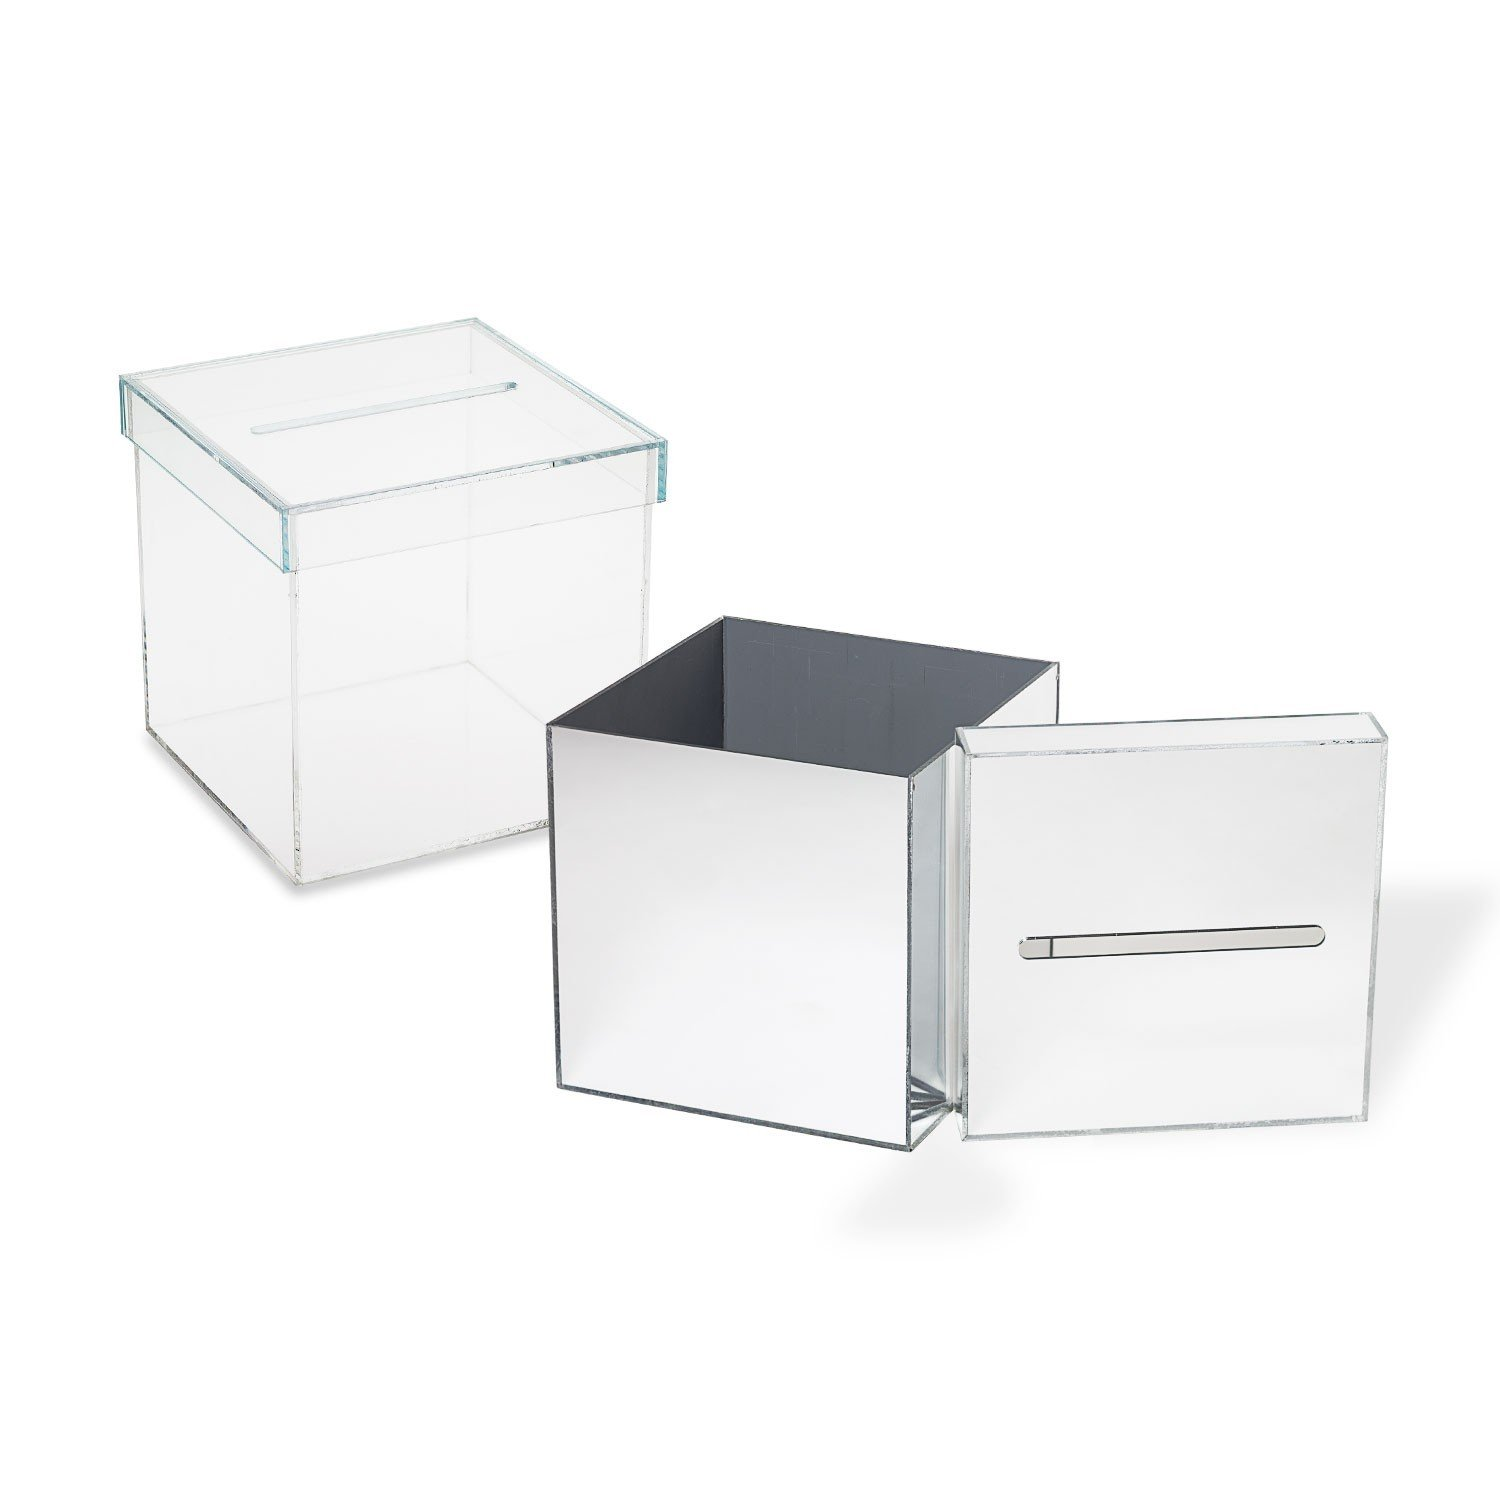 Source One Outstanding Quality Acrylic Donation Box with Removable Lid, Perfect for Weddings, Donations, Any Occasion (6x6x6, Clear) by SOURCEONE.ORG